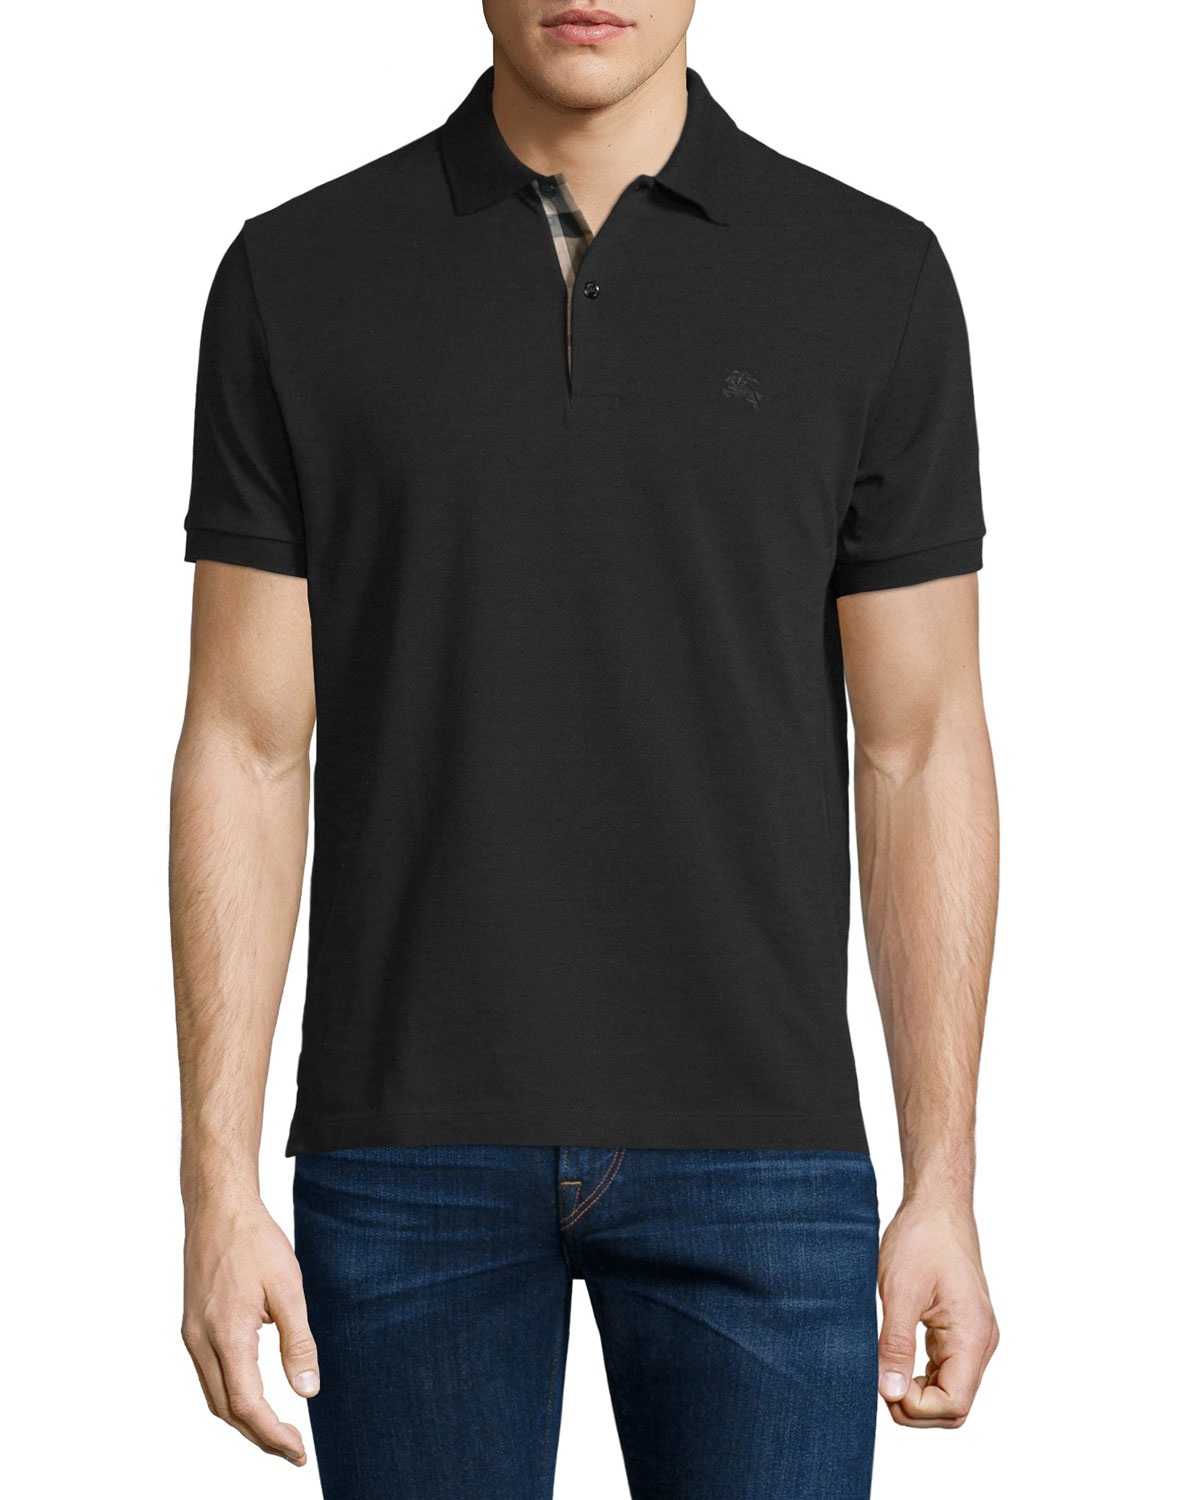 Short-Sleeve Oxford Polo Shirt, Black